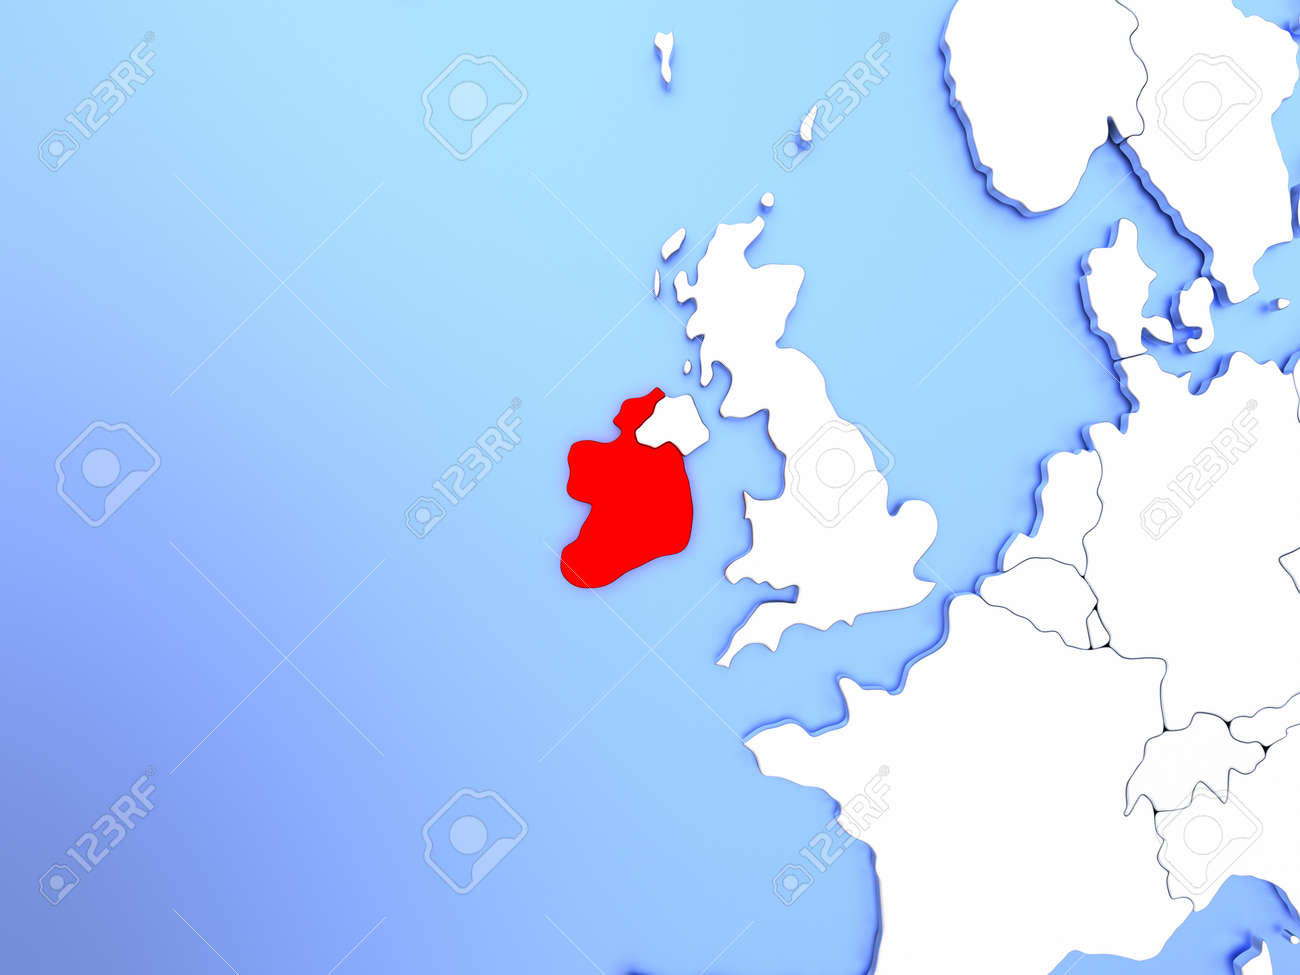 Simple Map Of Ireland.Map Of Ireland Highlighted In Red On Simple Shiny Metallic Map